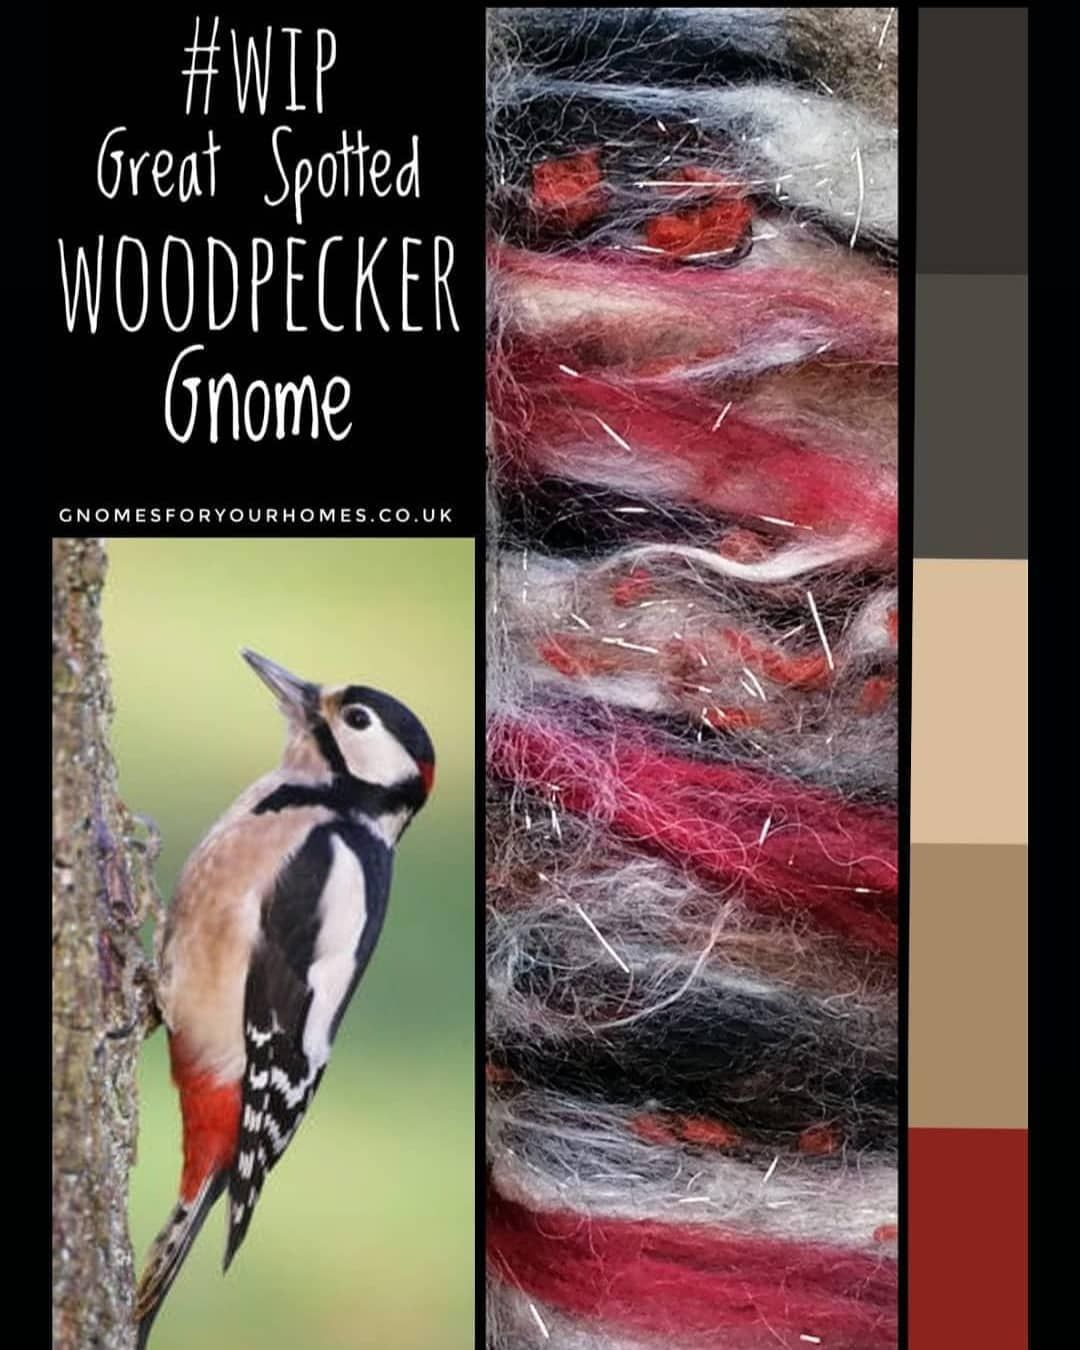 Great Spotted Woodpecker Gnome from gnomesforyourhomes